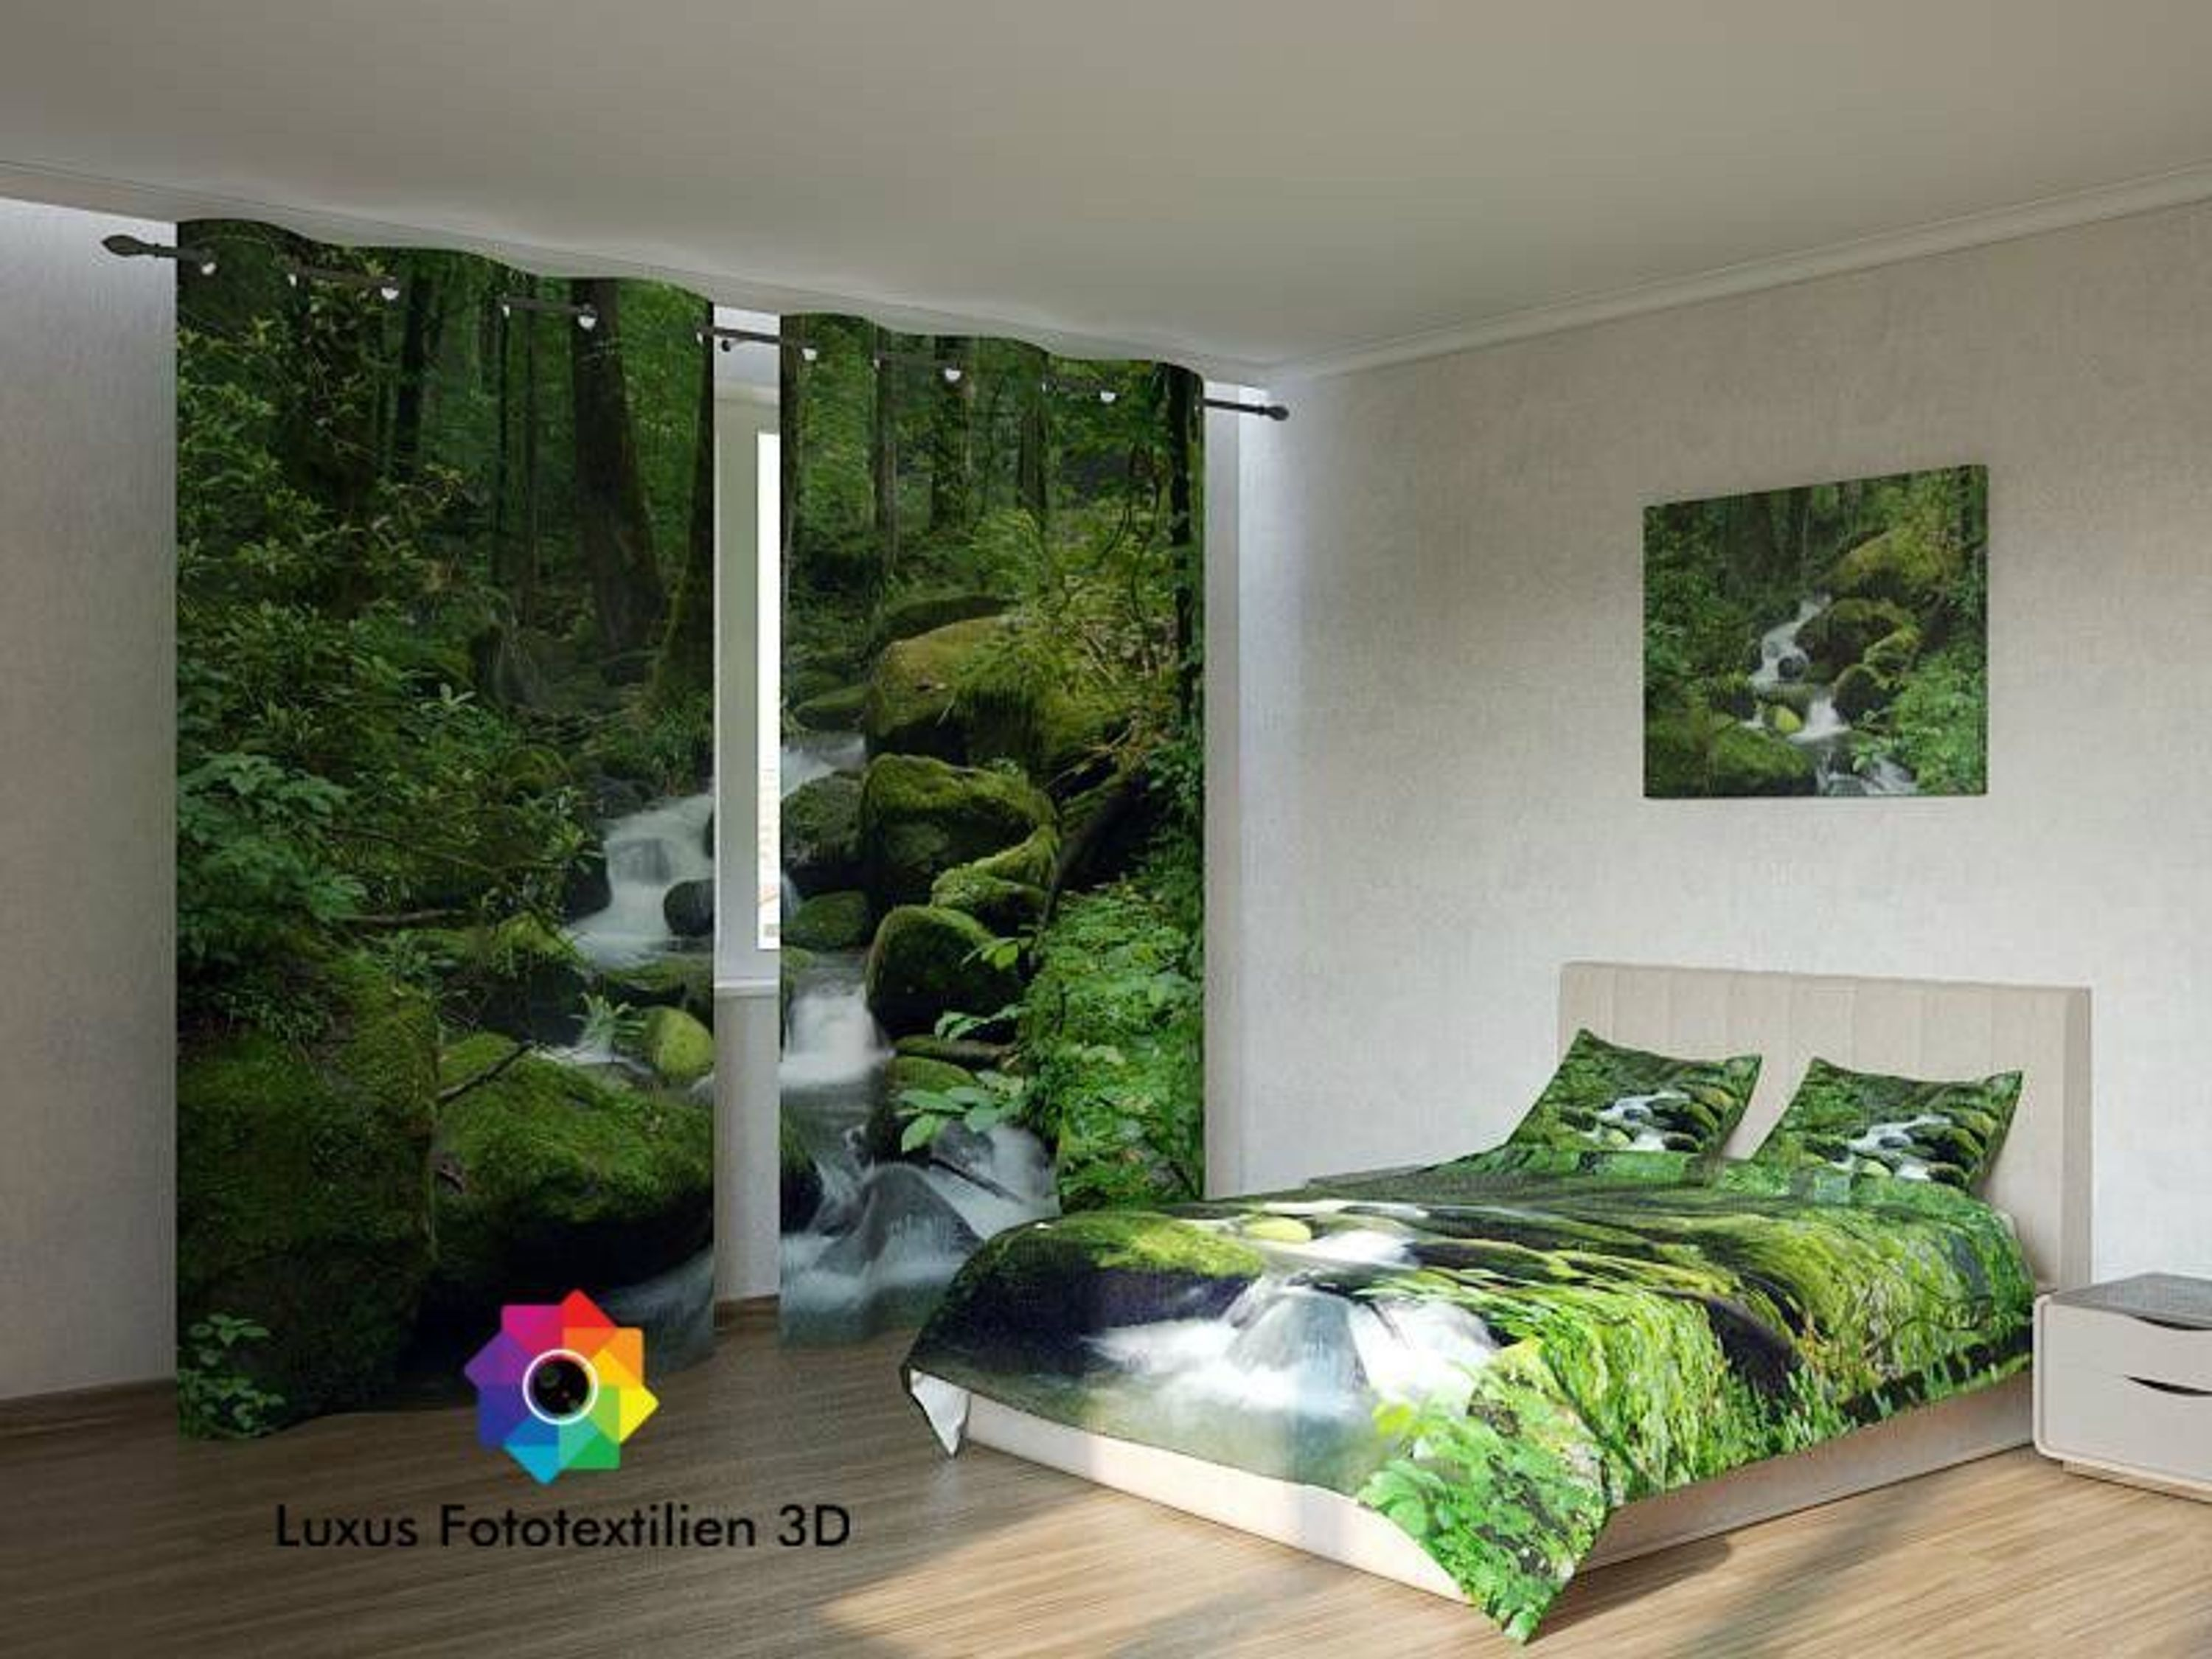 fotogardine wasserfall foto vorhang gardinen in luxus fotodruck 3d auf ma kaufen bei. Black Bedroom Furniture Sets. Home Design Ideas